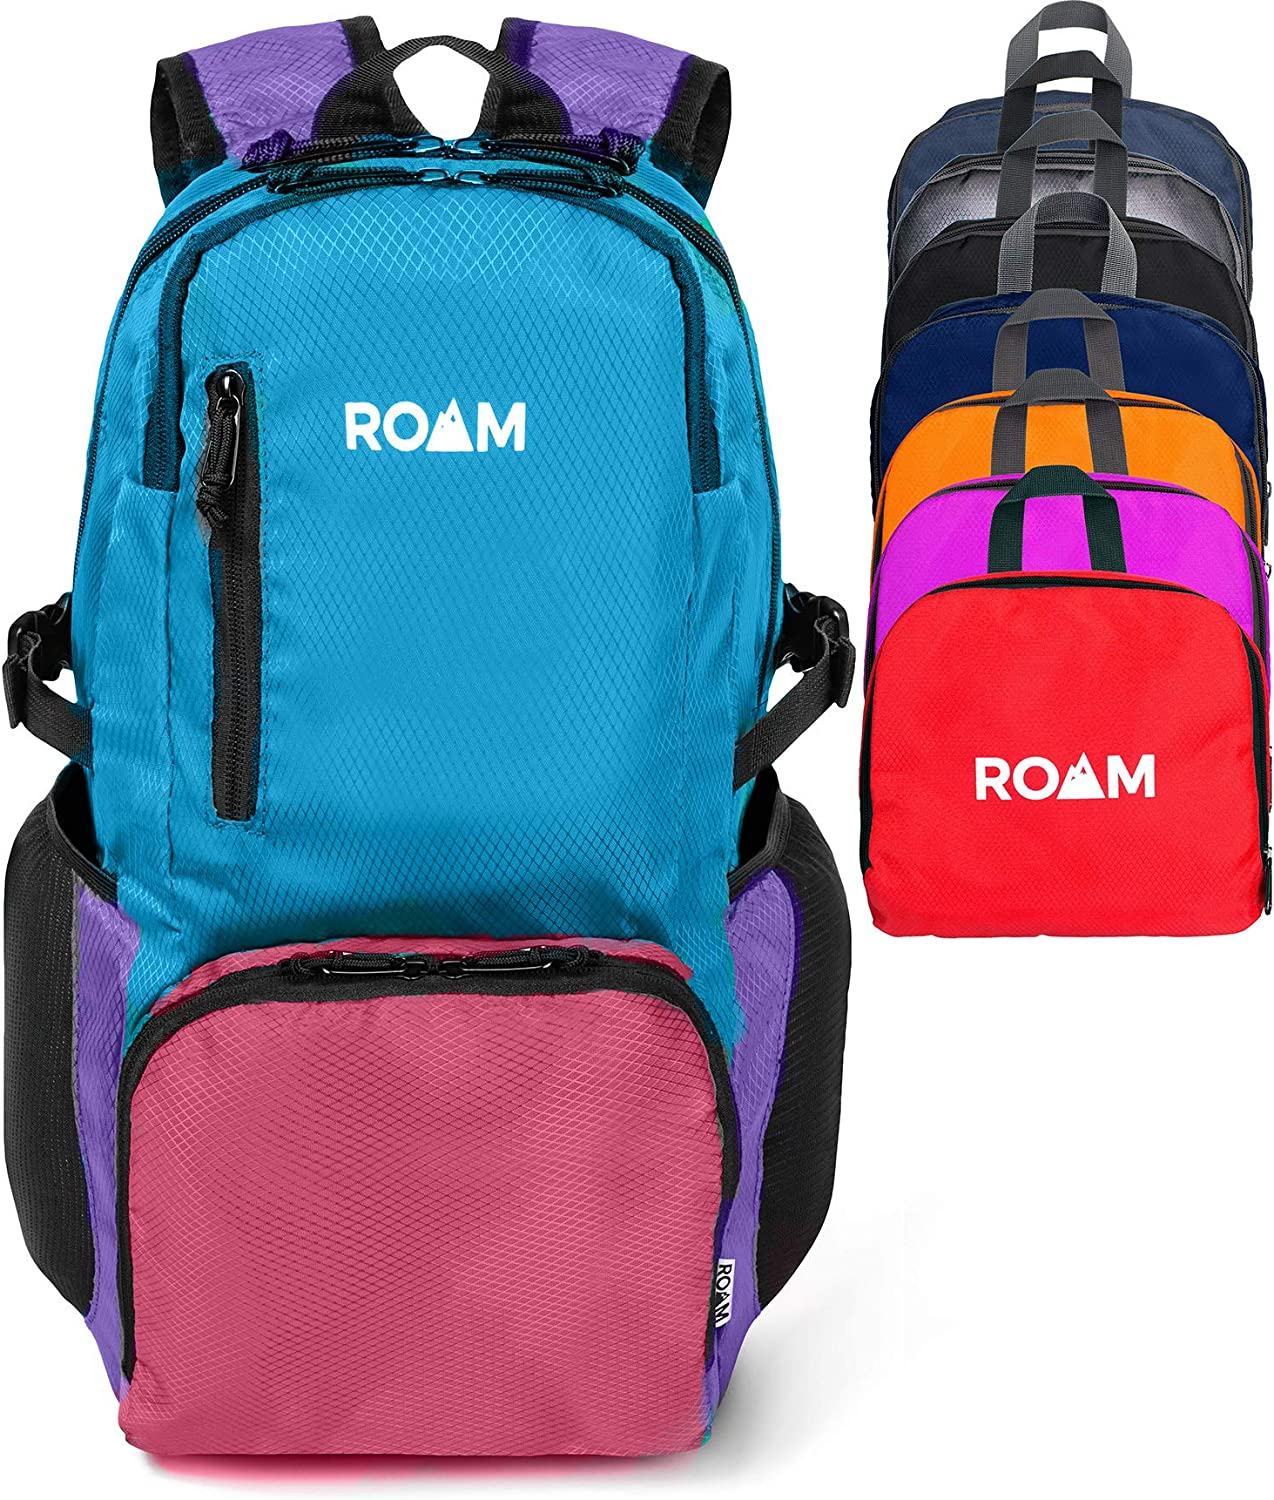 Roam Lightweight Packable Backpack Small Water Resistant Travel Hiking Daypack